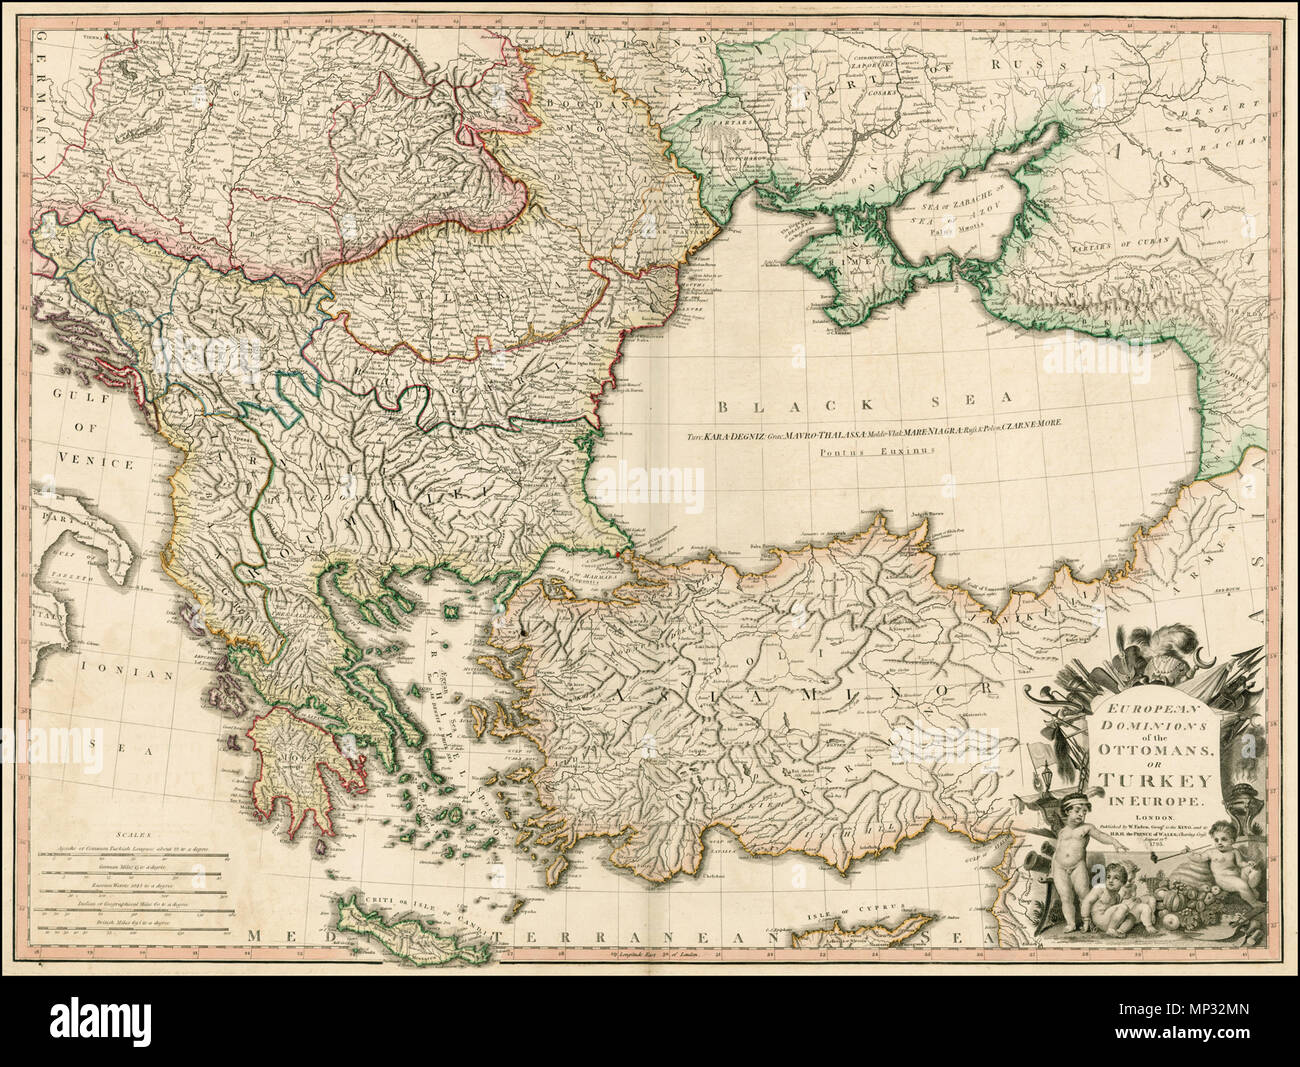 English european dominions of the ottomans or turkey in europe english european dominions of the ottomans or turkey in europe 1795 large detailed faden map of the region bounded by the greece and the ionian sea publicscrutiny Image collections